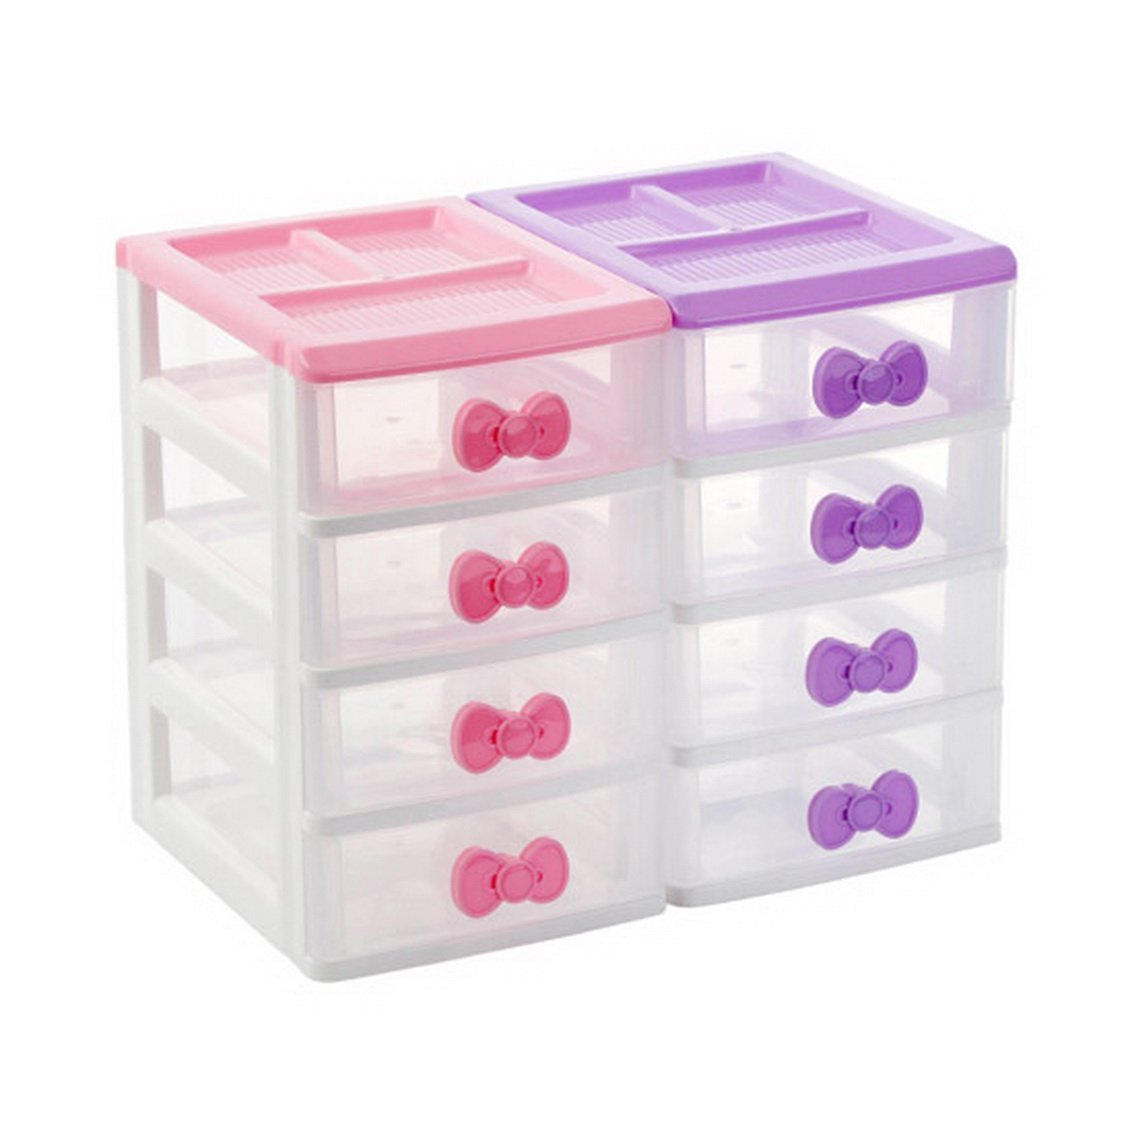 fengg2030shann Plastic storage box office desktop Drawer storage cabinet multi-layer small jewelry jewelry storage. Jewelry storage cabinets storage cabinets jewelry jewelry storage box